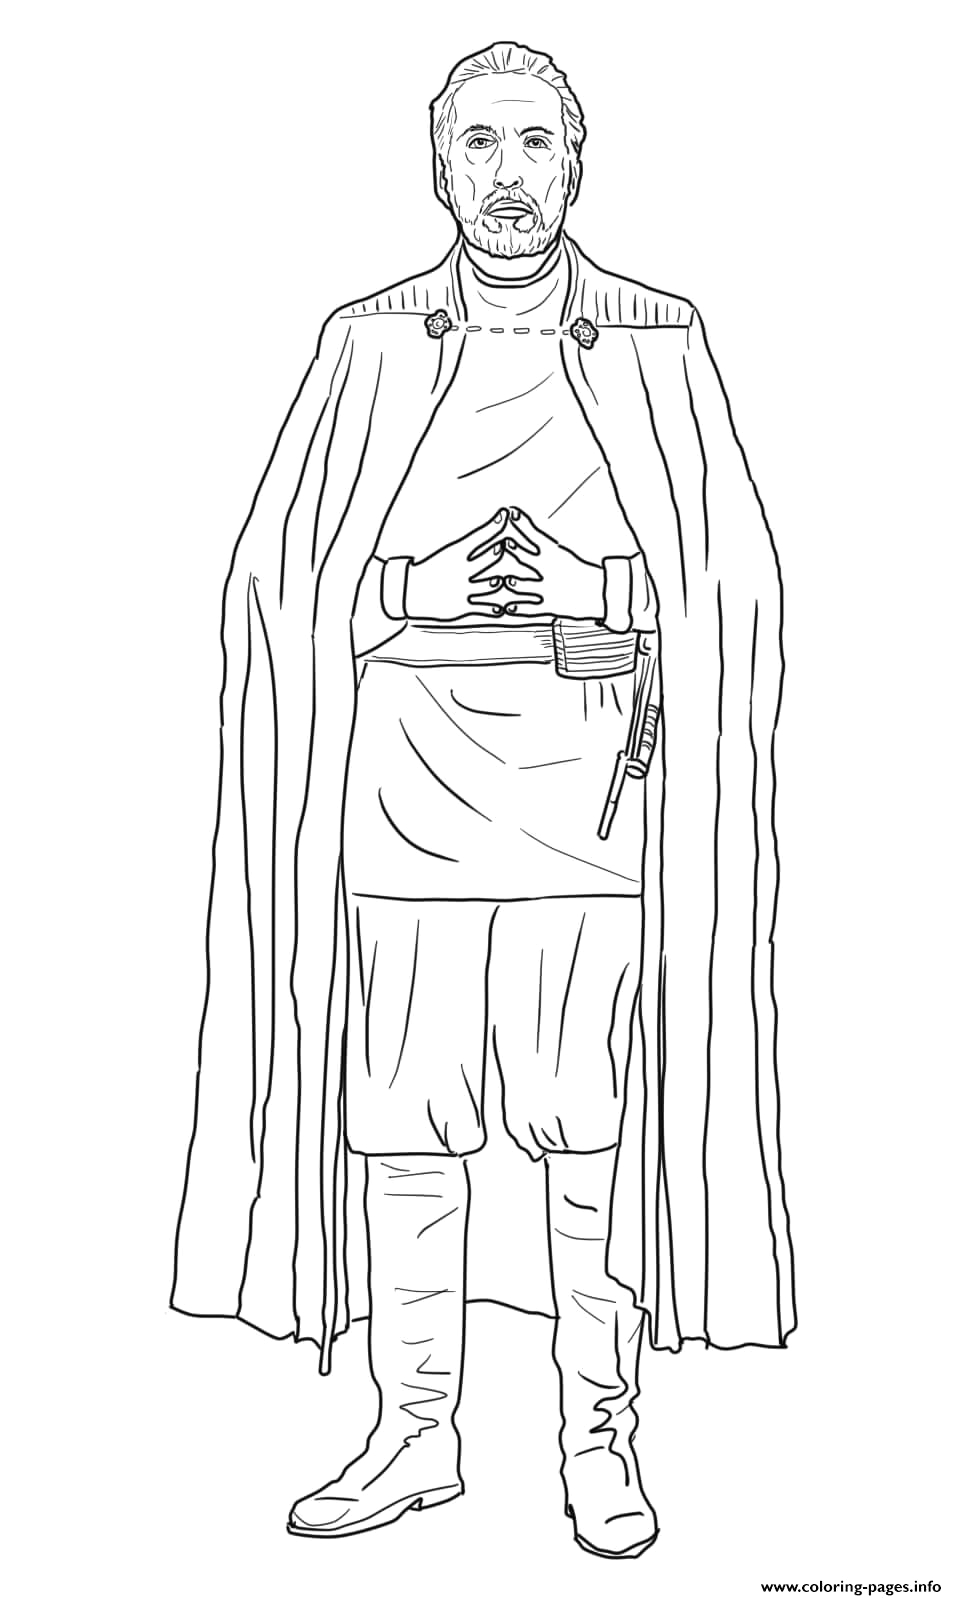 count dooku star wars episode ii of the clones printable coloring pages book